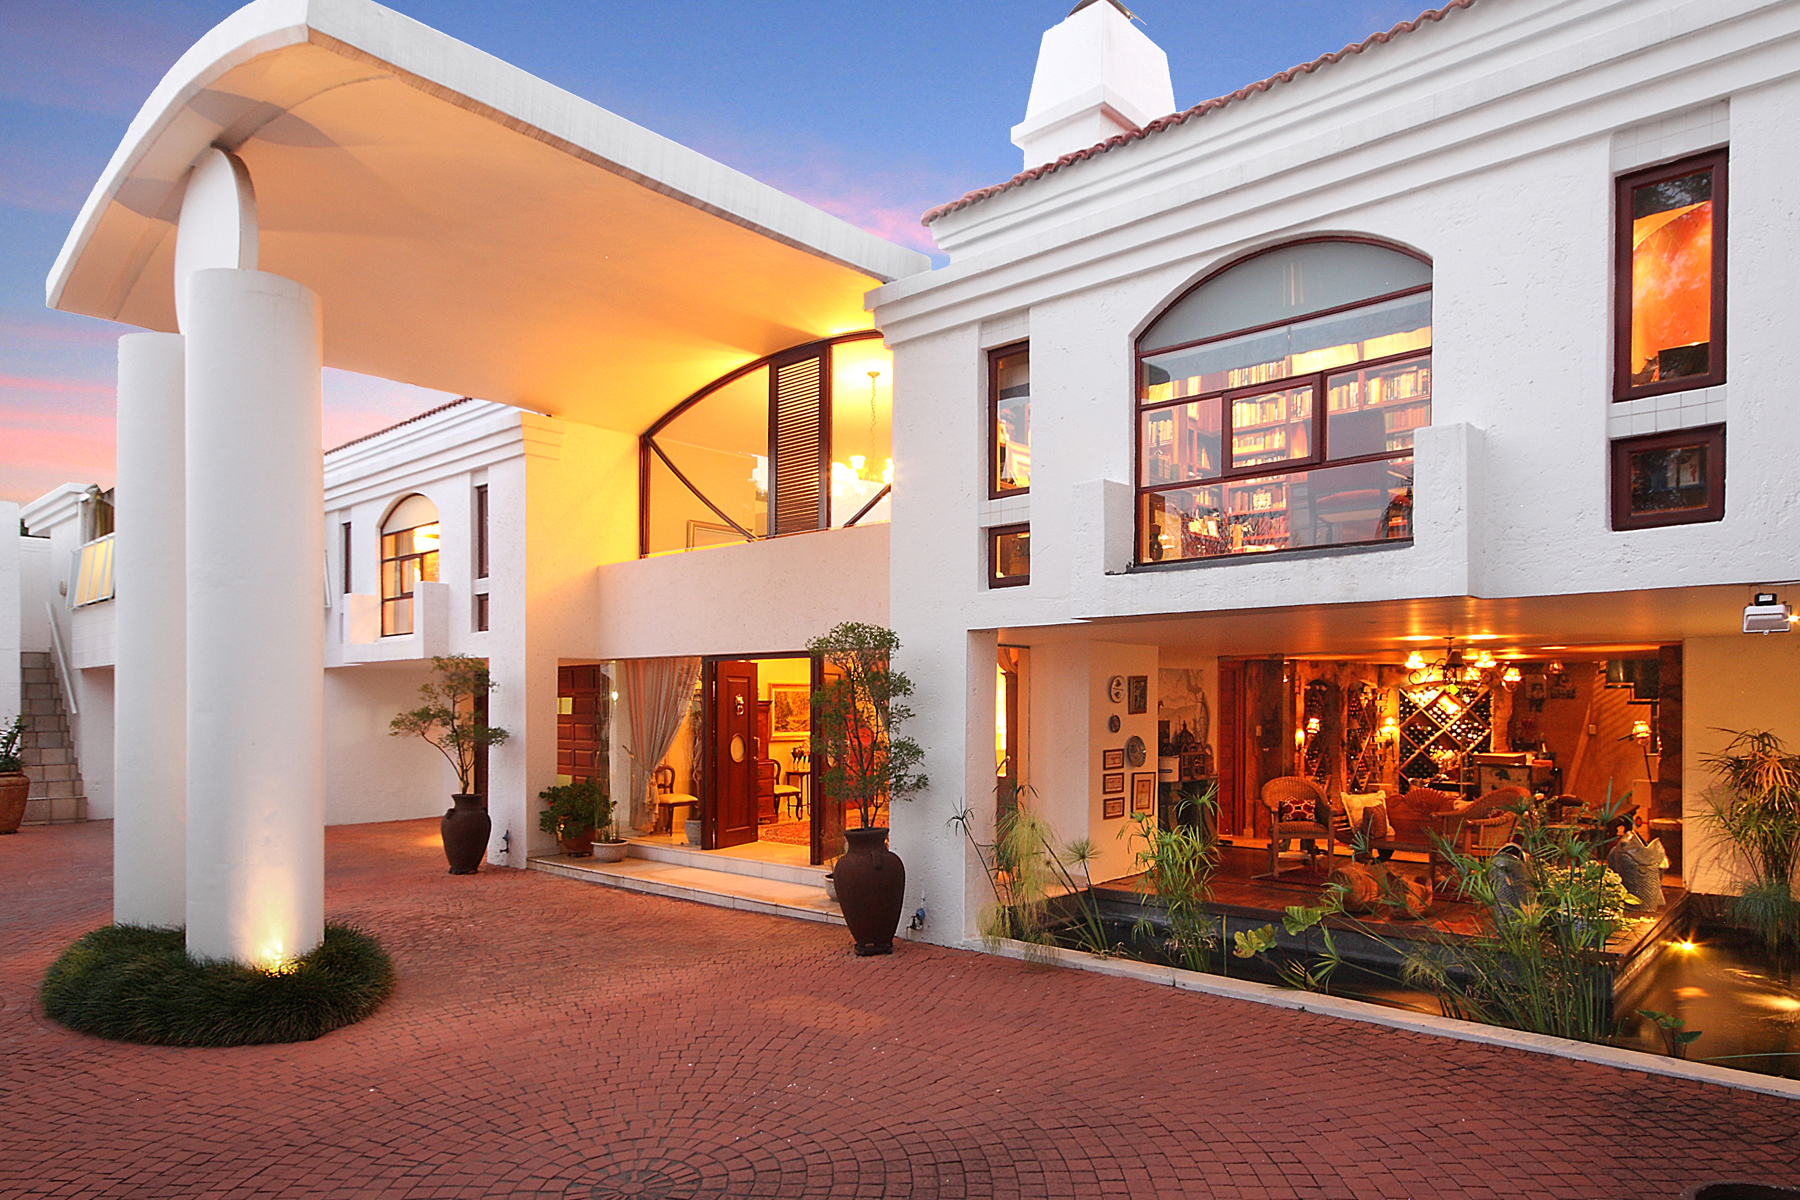 Single Family Home for Sale at A house in Atholl Johannesburg, Gauteng, 2196 South Africa